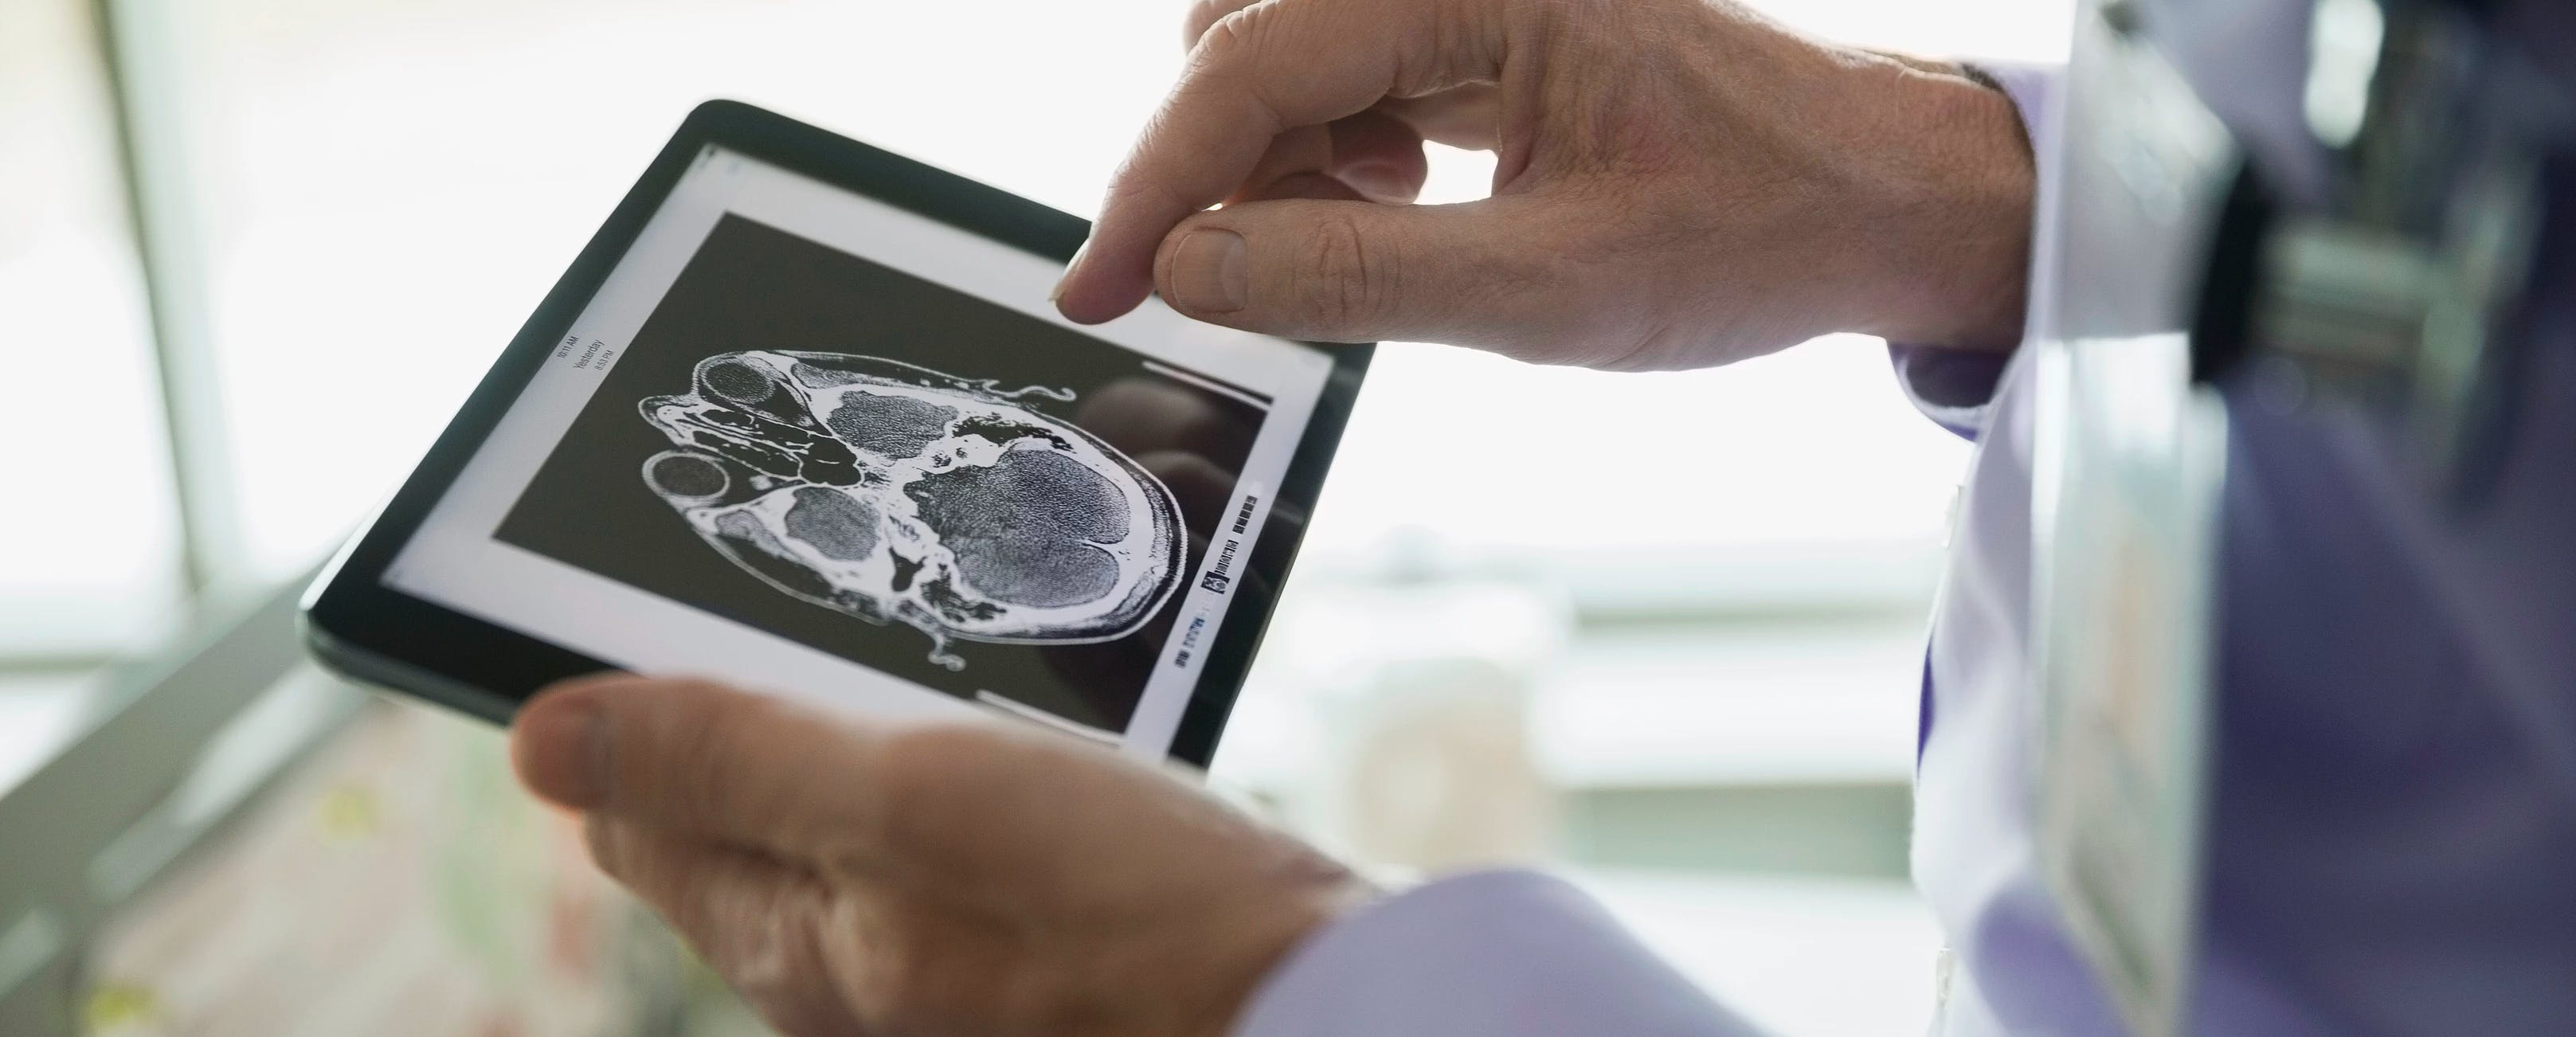 Doctor looking at a brain scan on an iPad